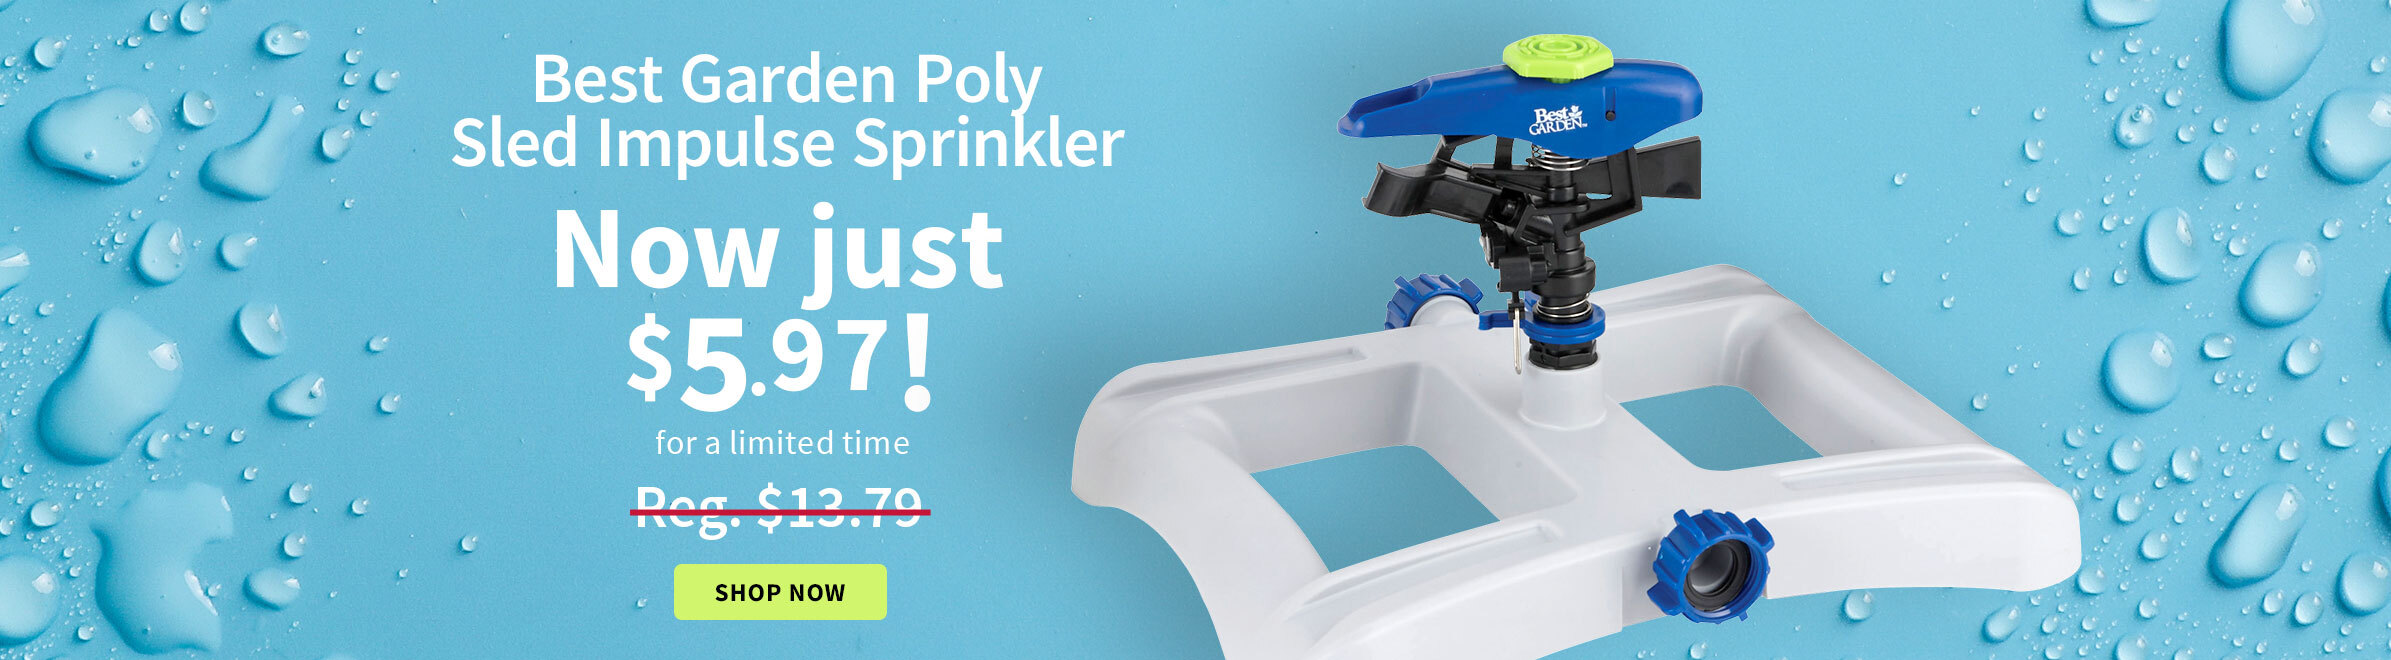 Best Garden Sled Impulse Sprinkler